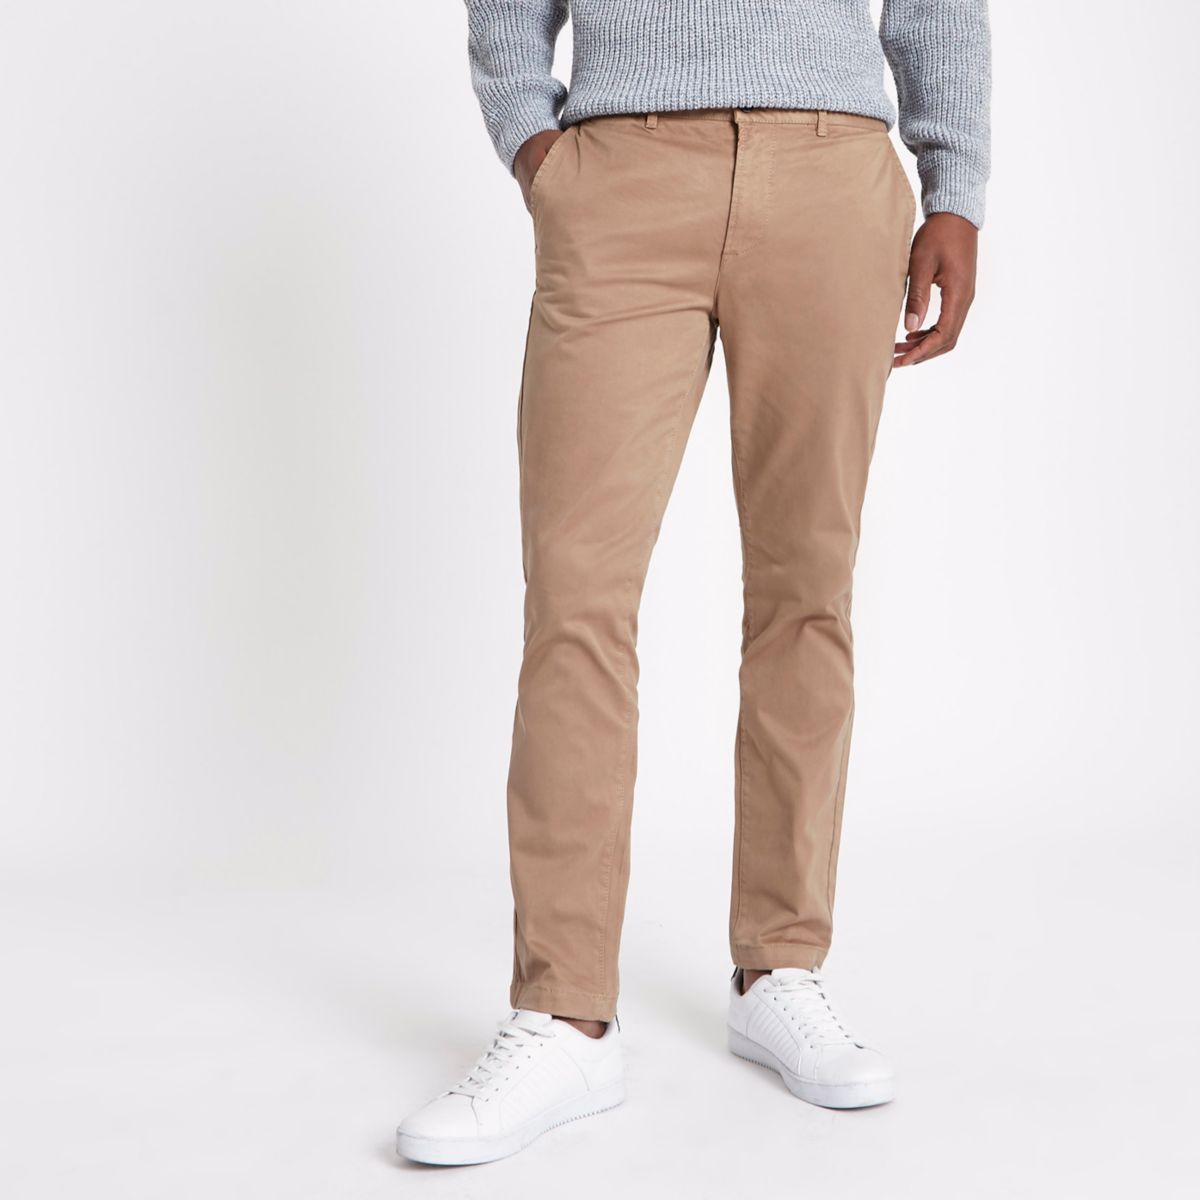 Tan brown slim fit chino pants